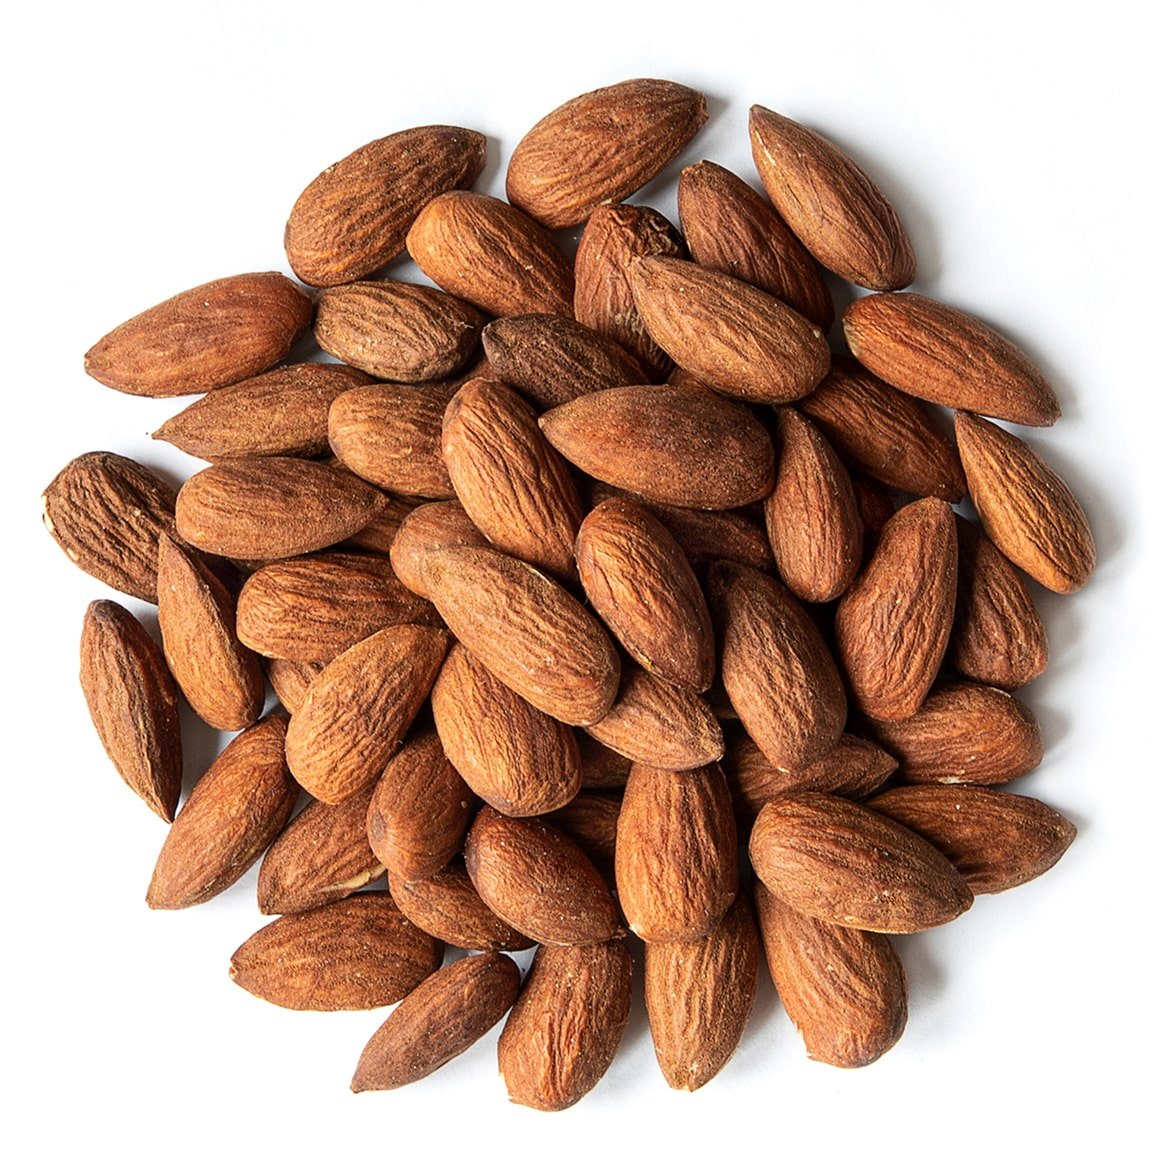 organic-roasted-natural-almonds-main-min1